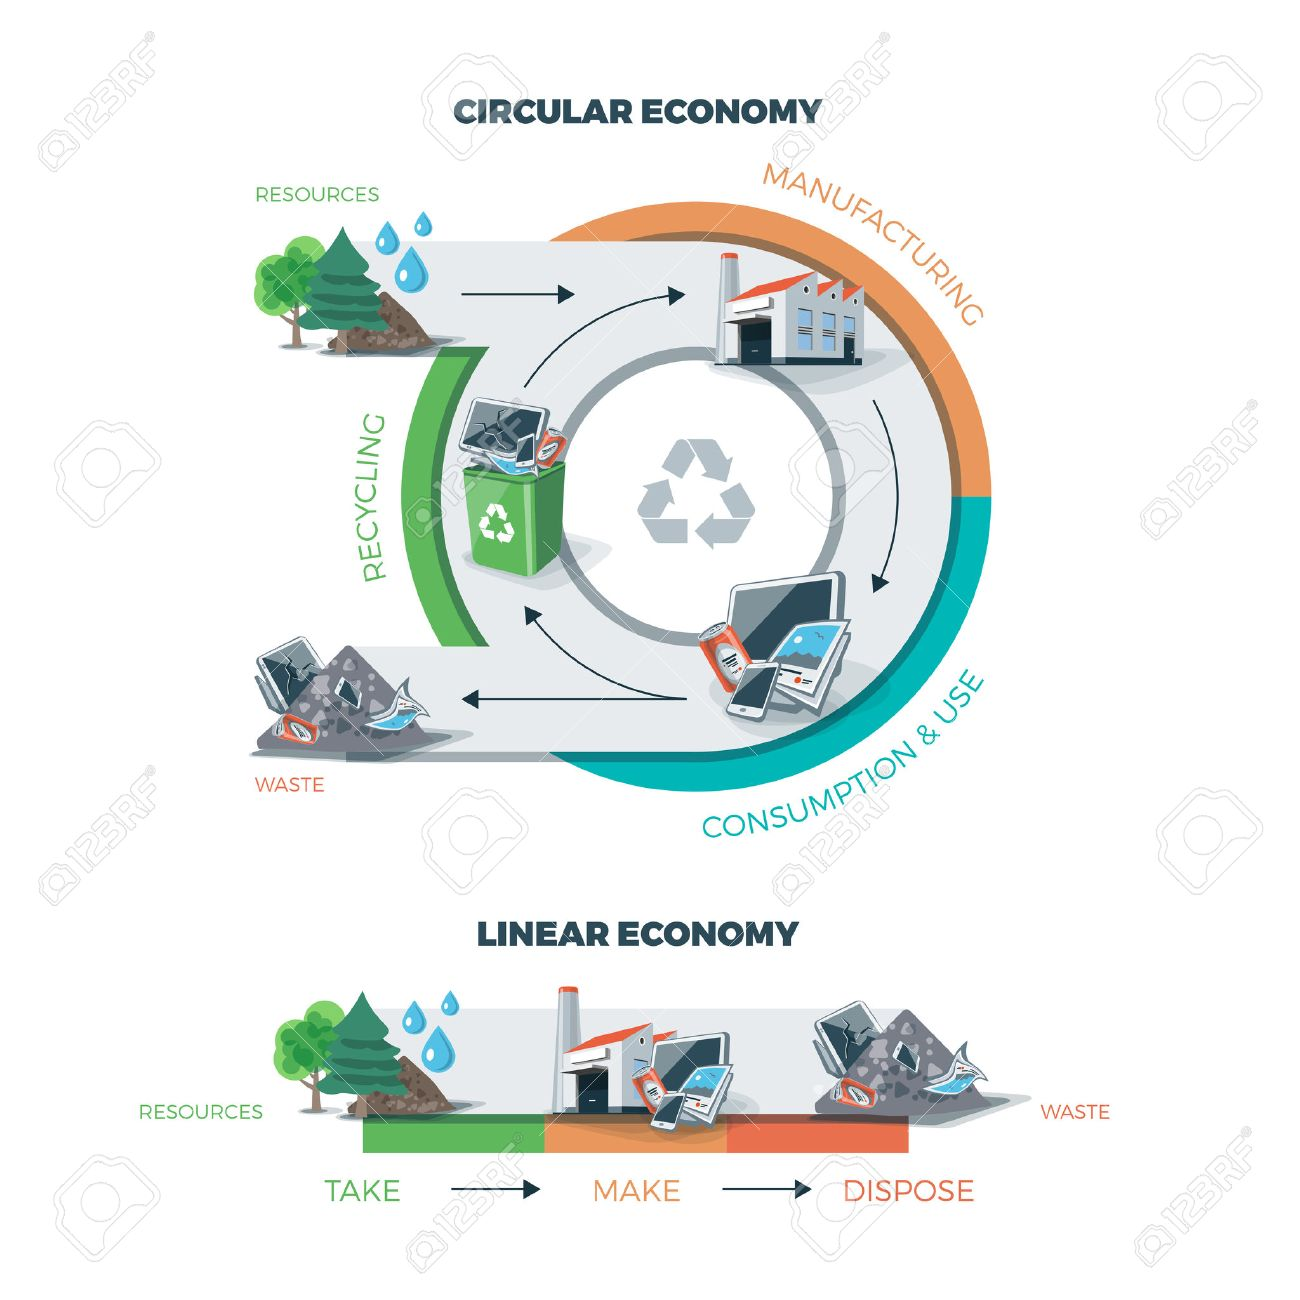 Comparing circular and linear economy showing product life cycle. Natural resources are taken to manufacturing. After usage product is recycled or dumped. Vector illustration on white background. Waste recycling management concept. - 52435640